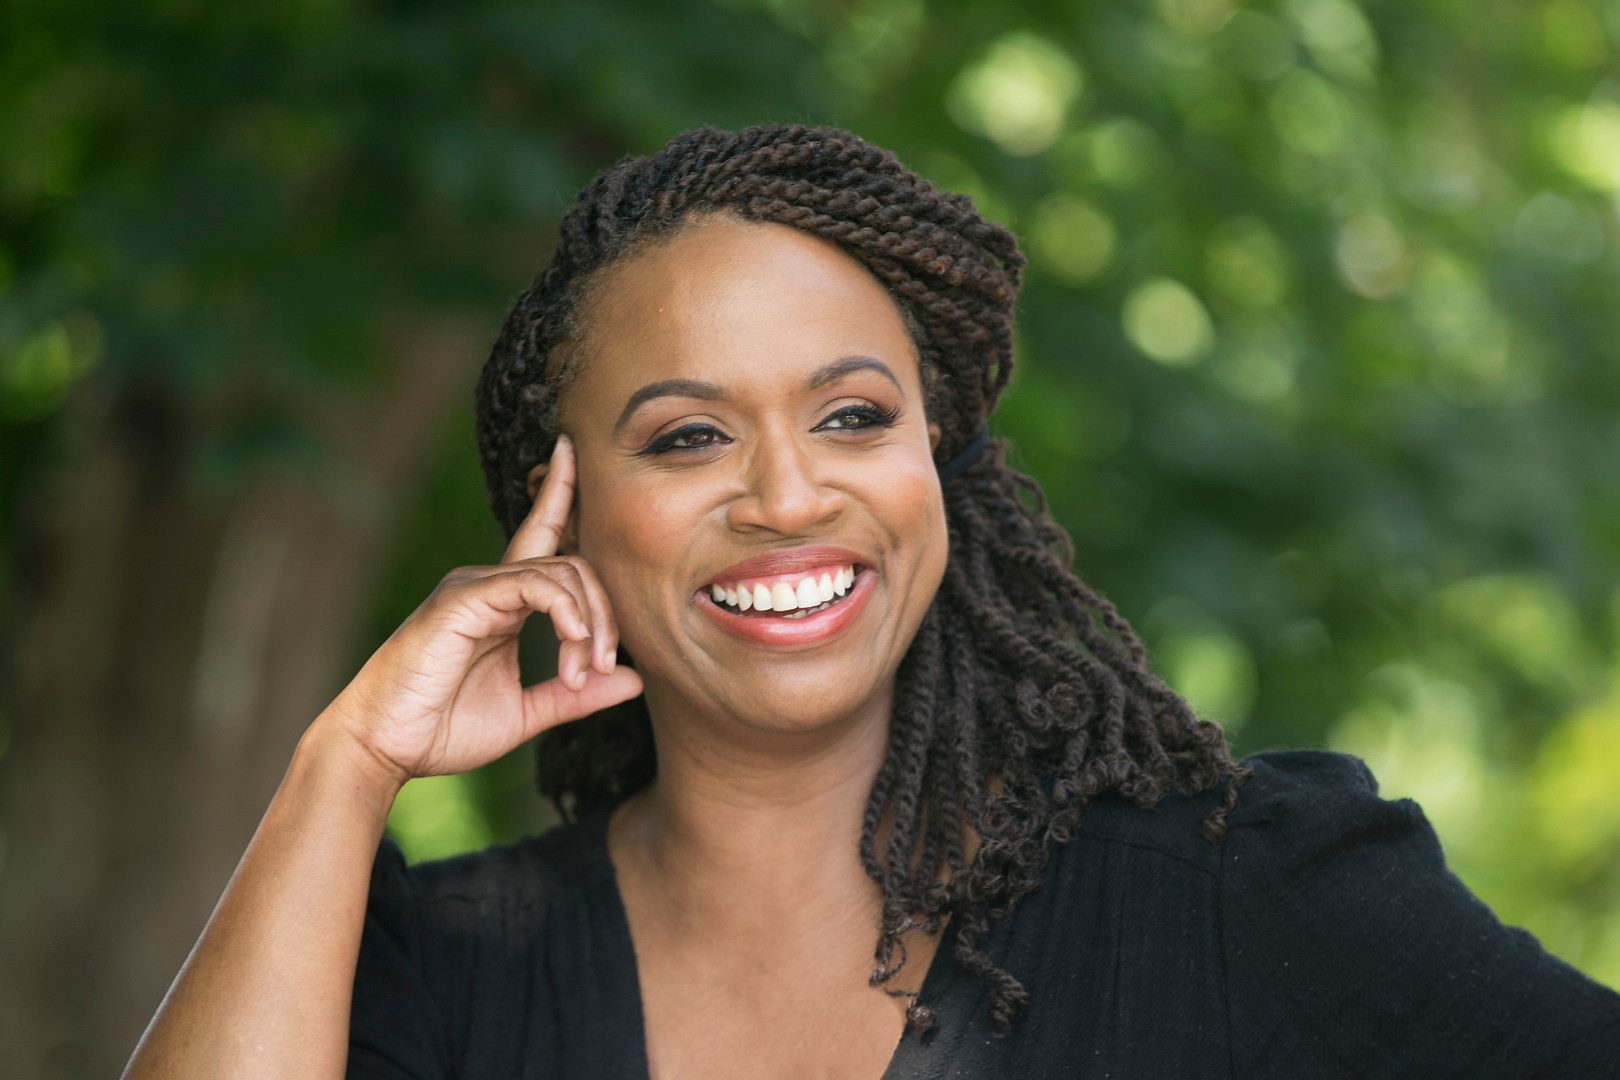 Ayanna Pressley (D) won the 7th Congressional seat in MA becoming the first woman of color to go to Congress from the state. Mrs. Pressley was also the first woman of color to serve of the Boston City Council